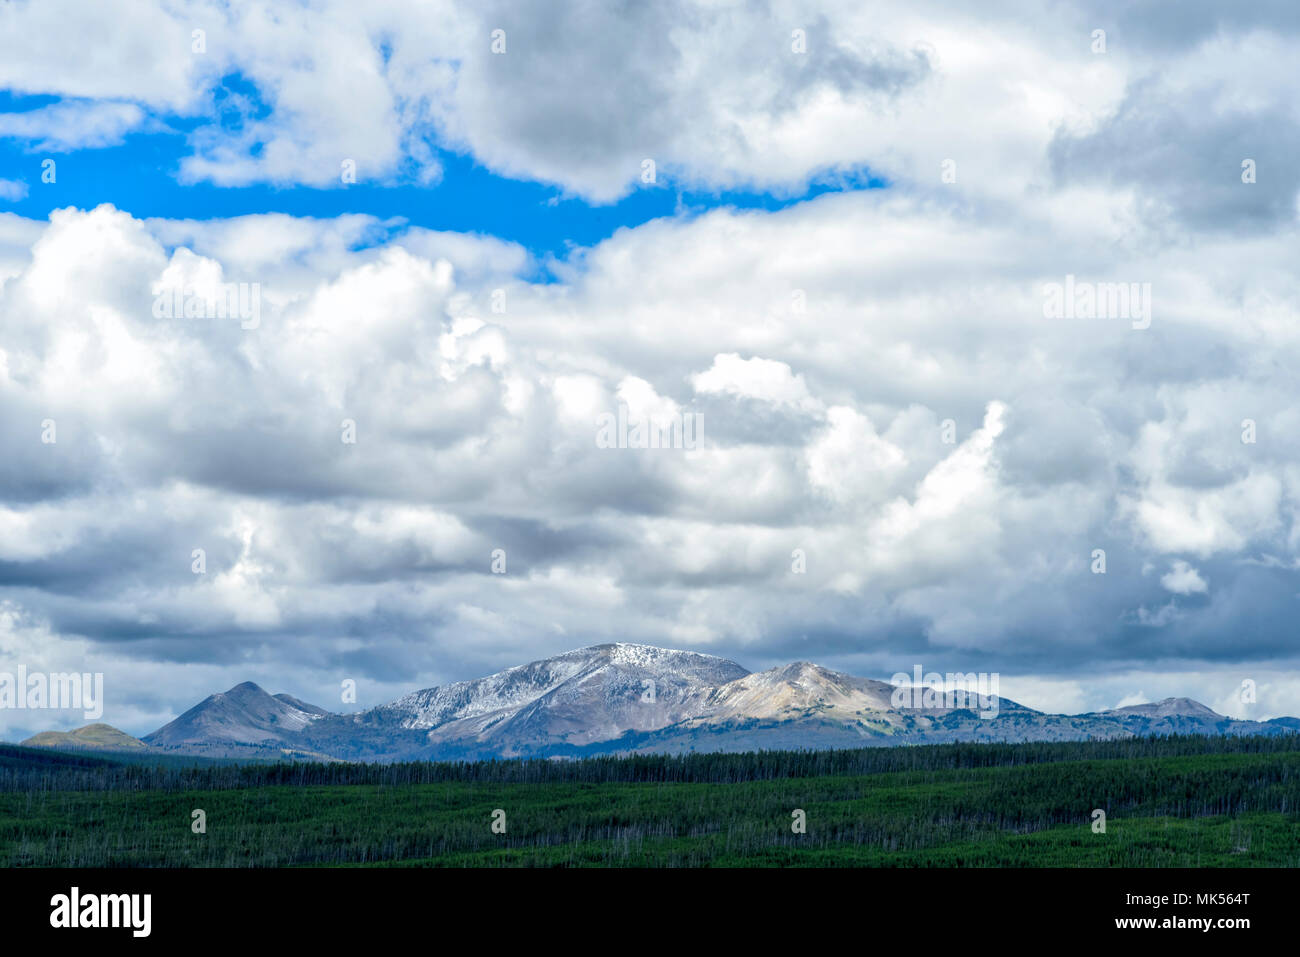 Looking out over a green forest and valley with tall snow capped mountains in the background under a blue sky with white fluffy clouds. - Stock Image